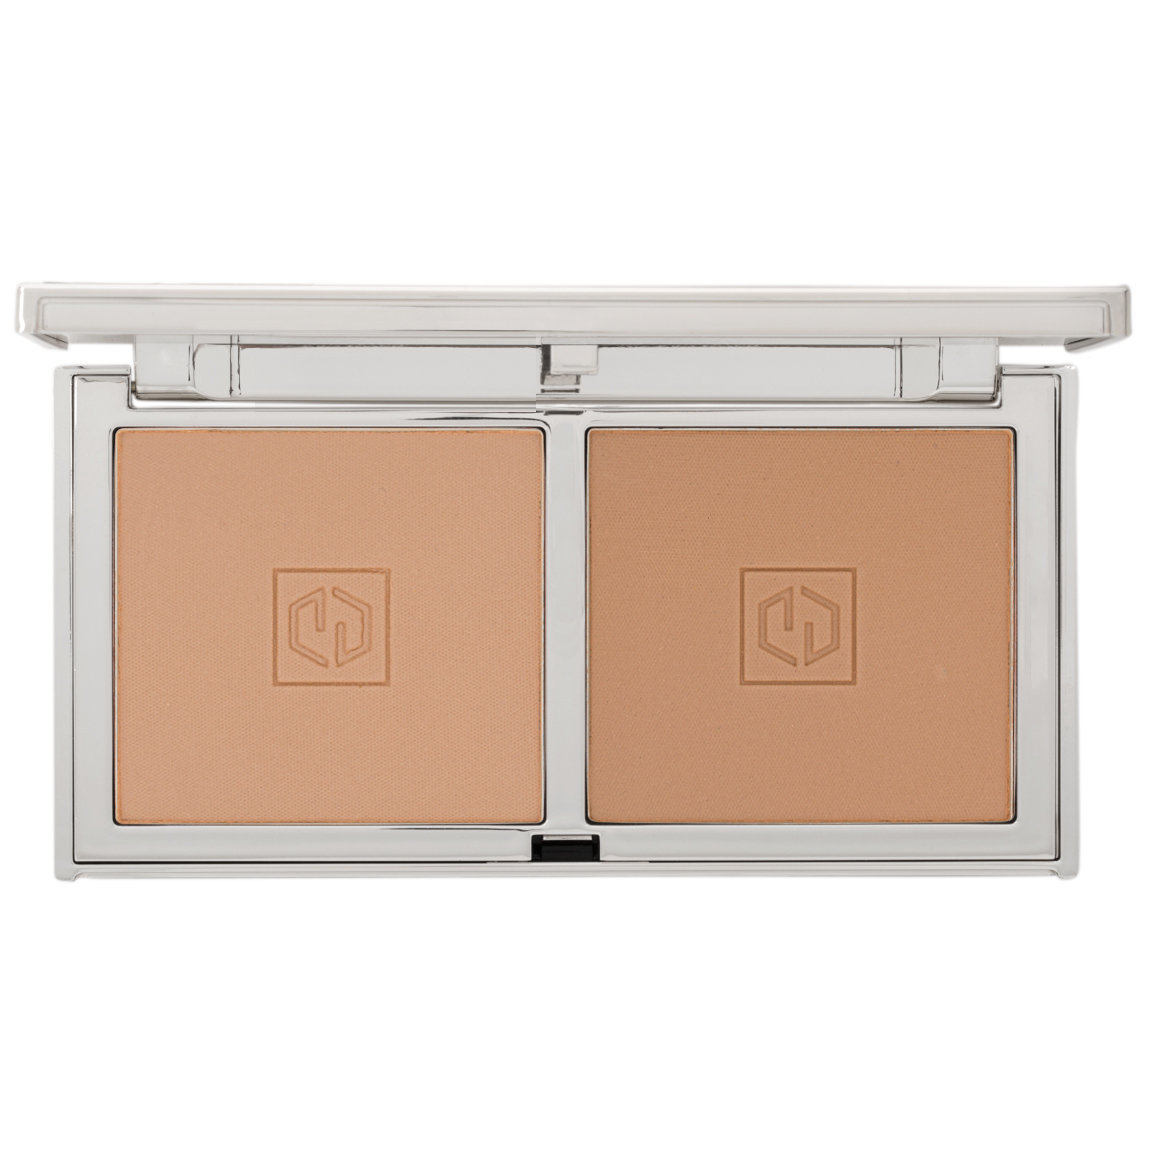 Jouer Cosmetics Sunswept Bronzer Duo Light To Medium product smear.